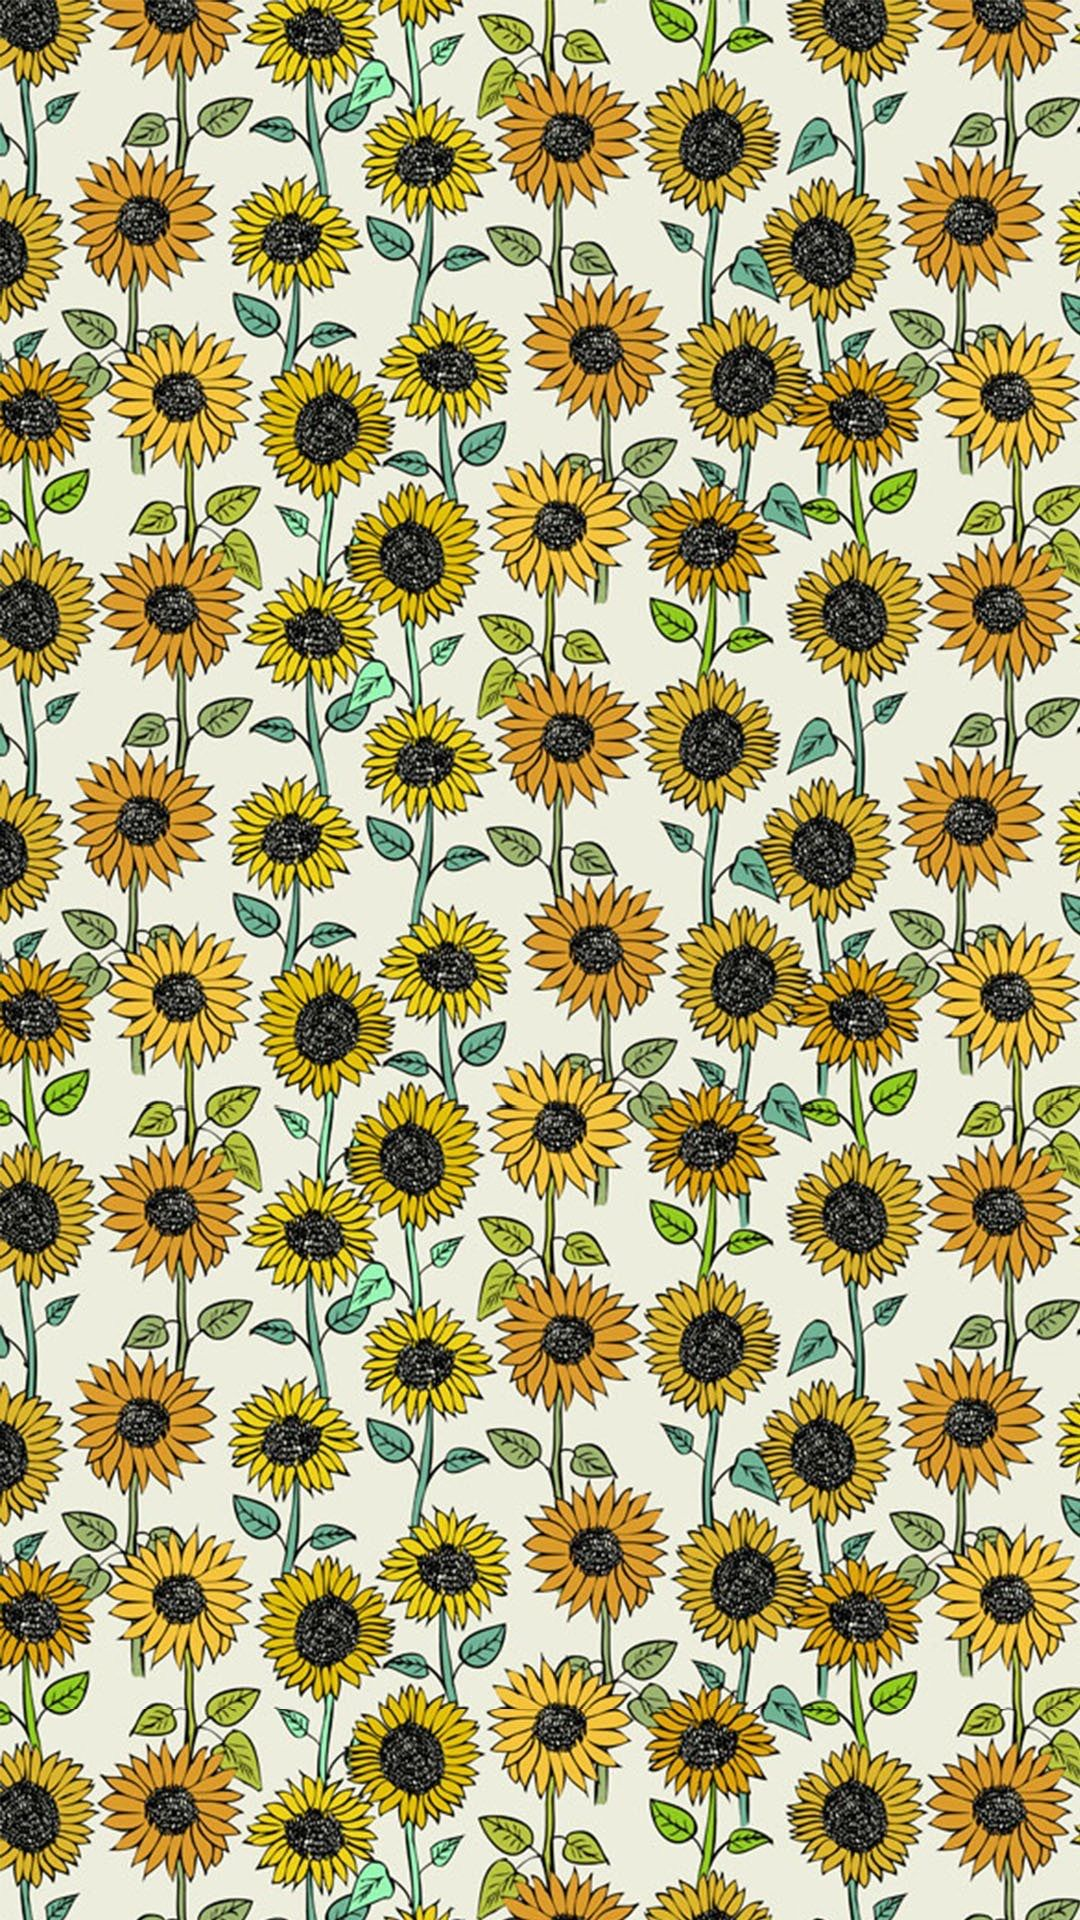 Sunflower © Sunflower wallpaper, Cute wallpapers